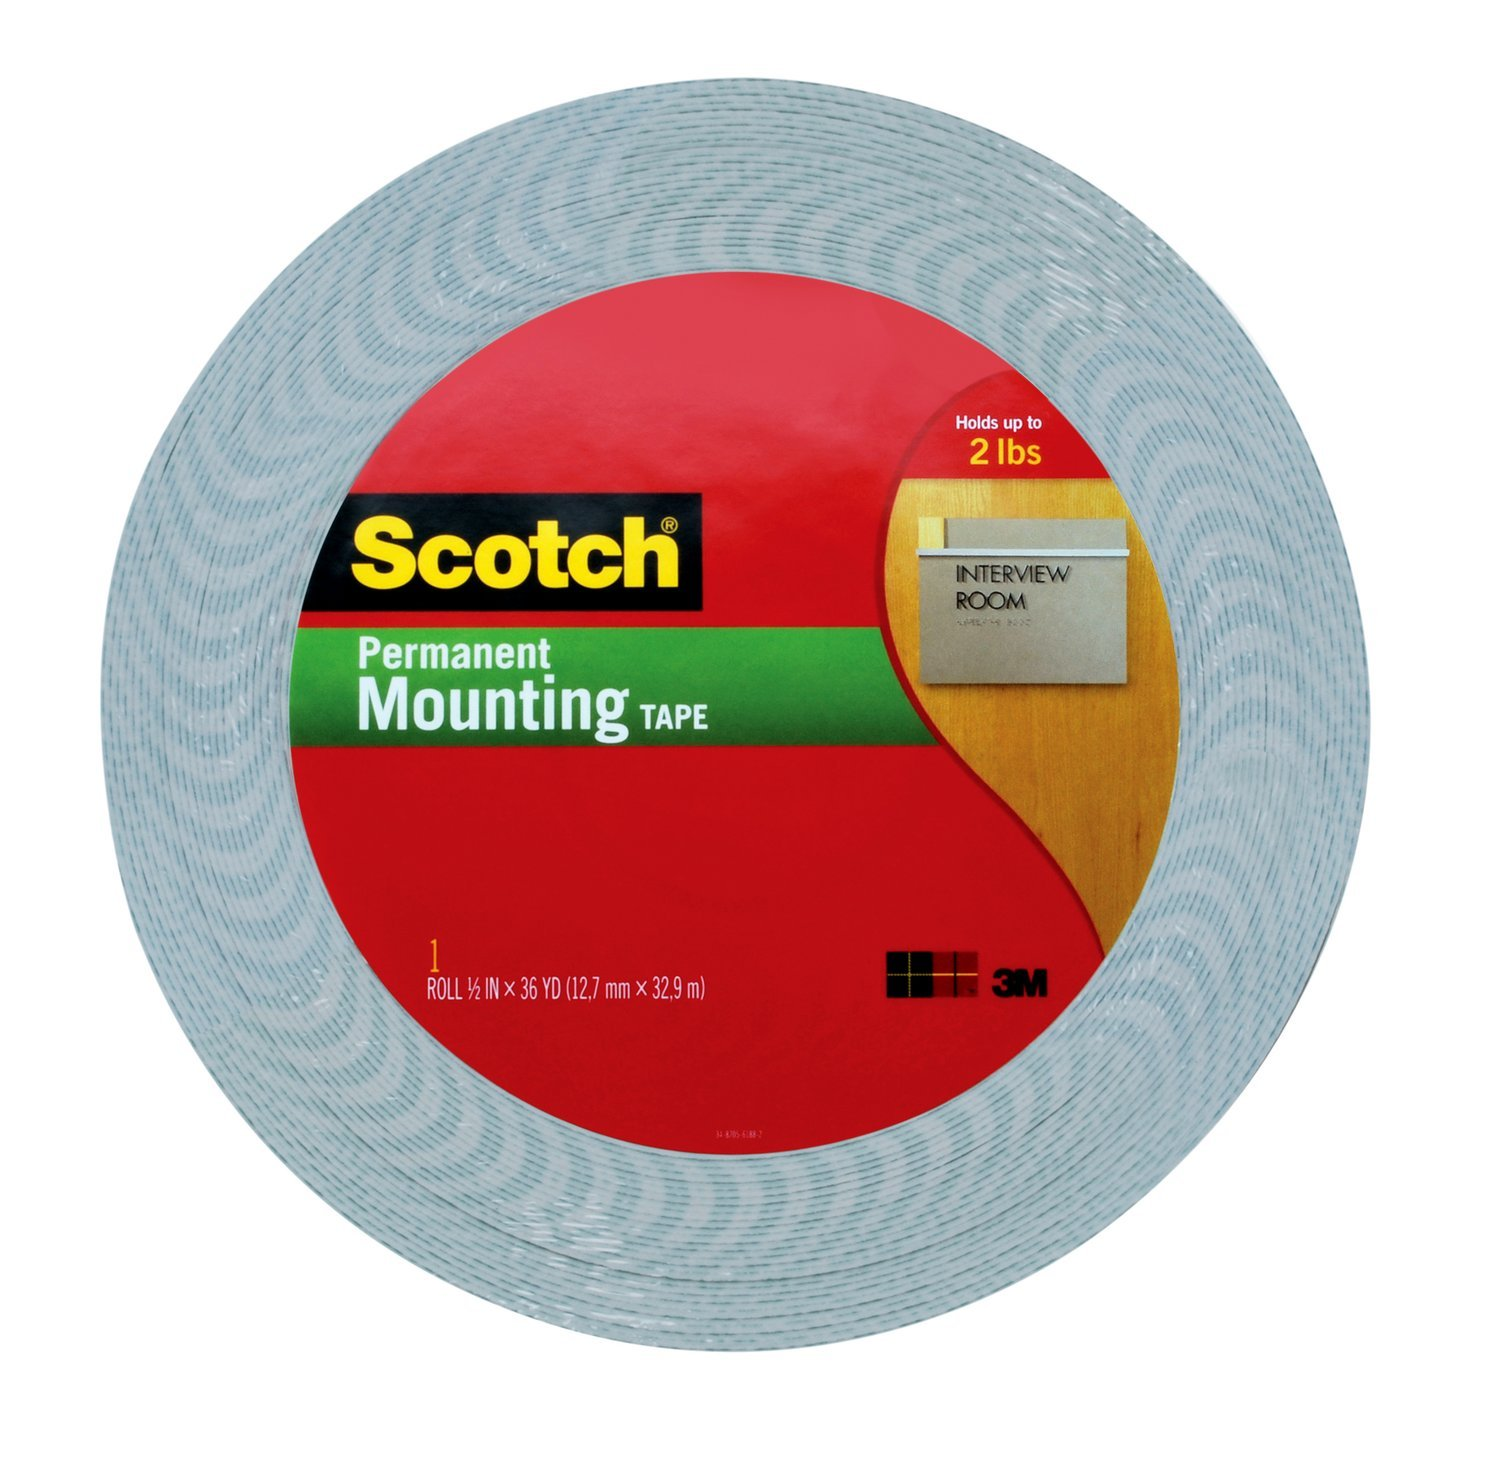 3M Scotch 1/2-Inch by 36-Yard Double-Sided Foam Tape (4016)